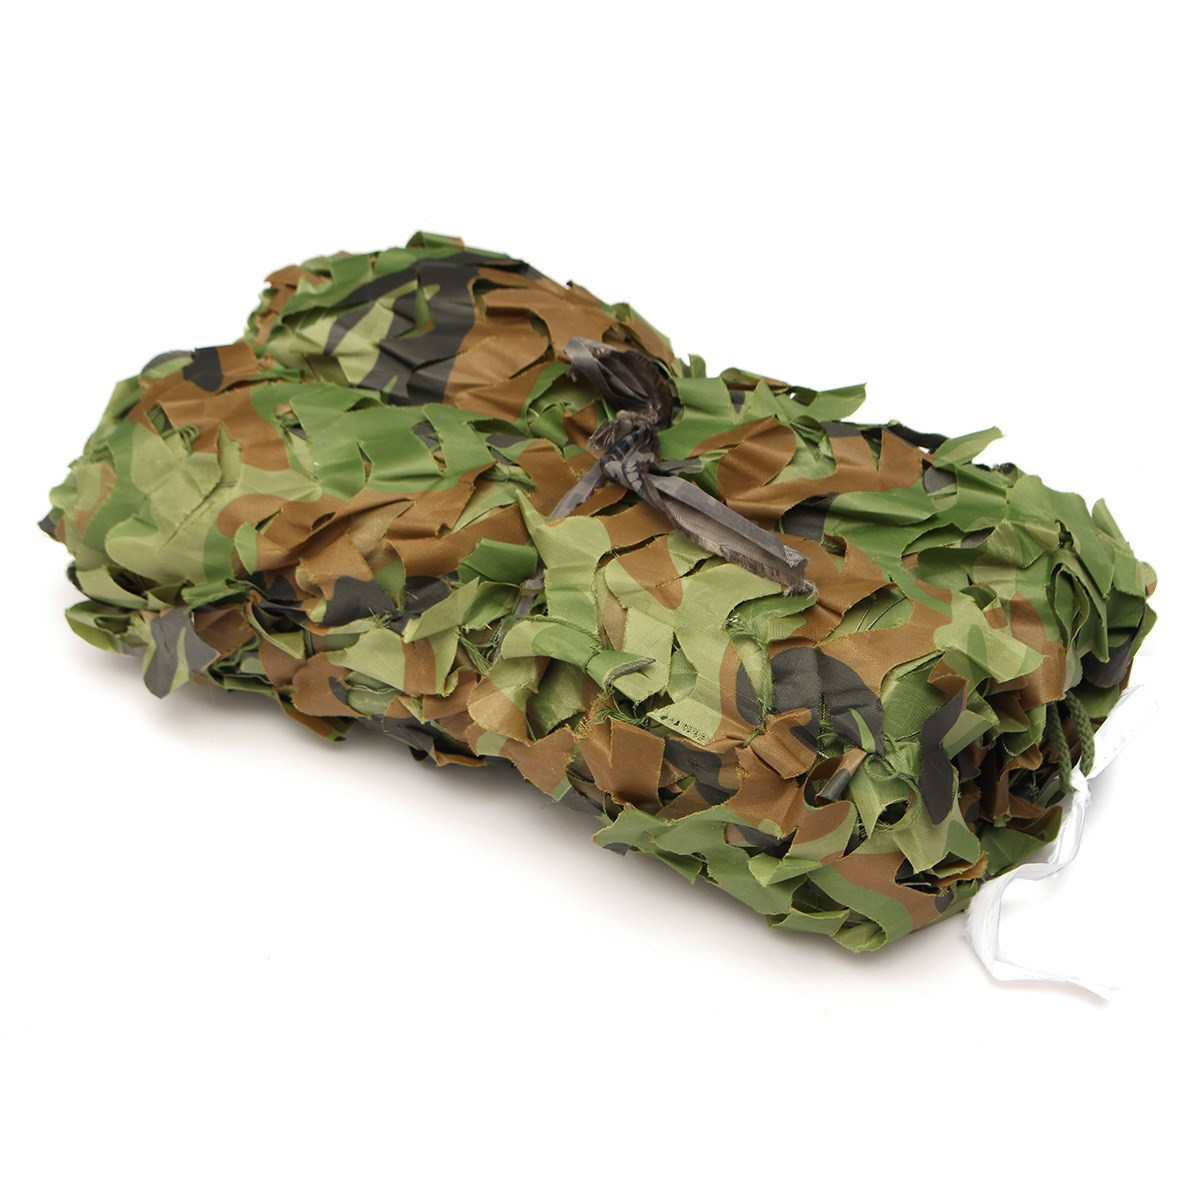 3 x 5m Hunting Camping Outdoor Desert Woodlands Blinds Army Military Camouflage Camo Net Sun Shelter Jungle sun shelter